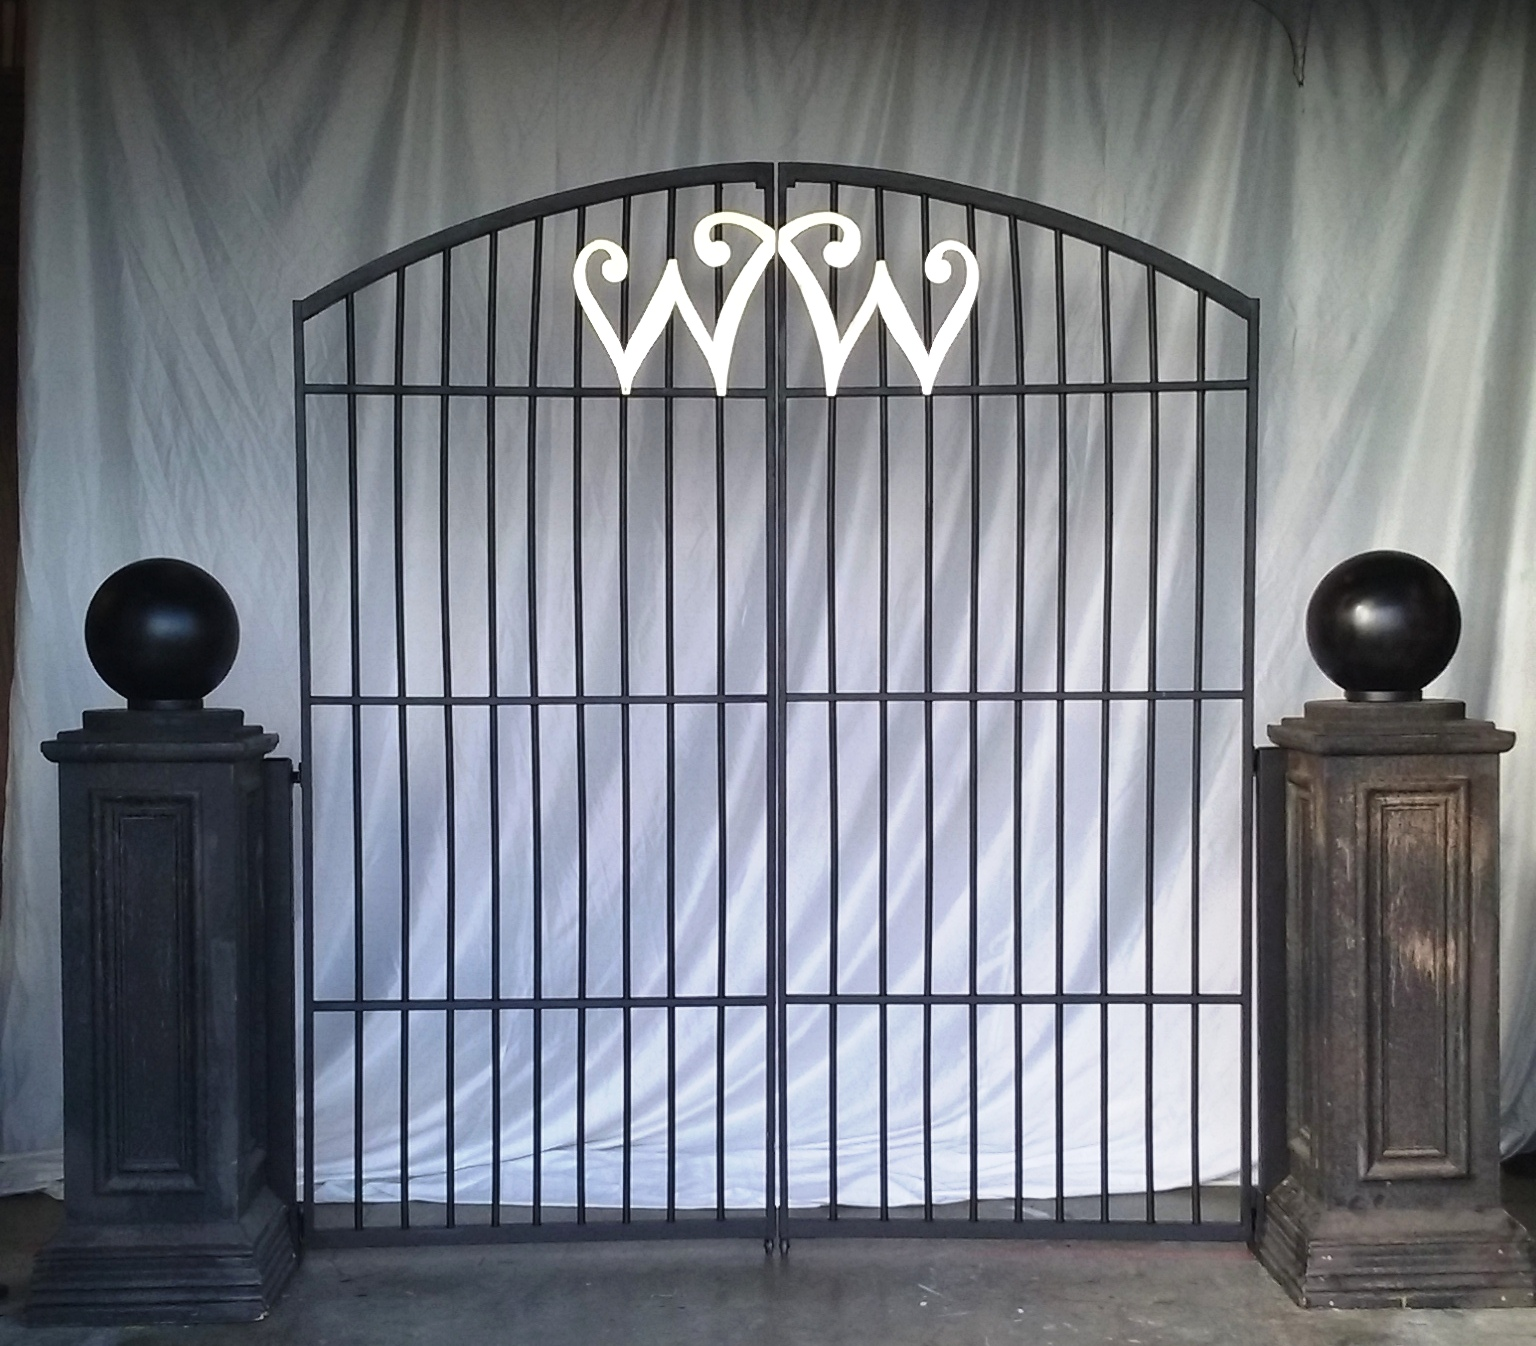 Willy Wonka Gate (2.3m x 1m)